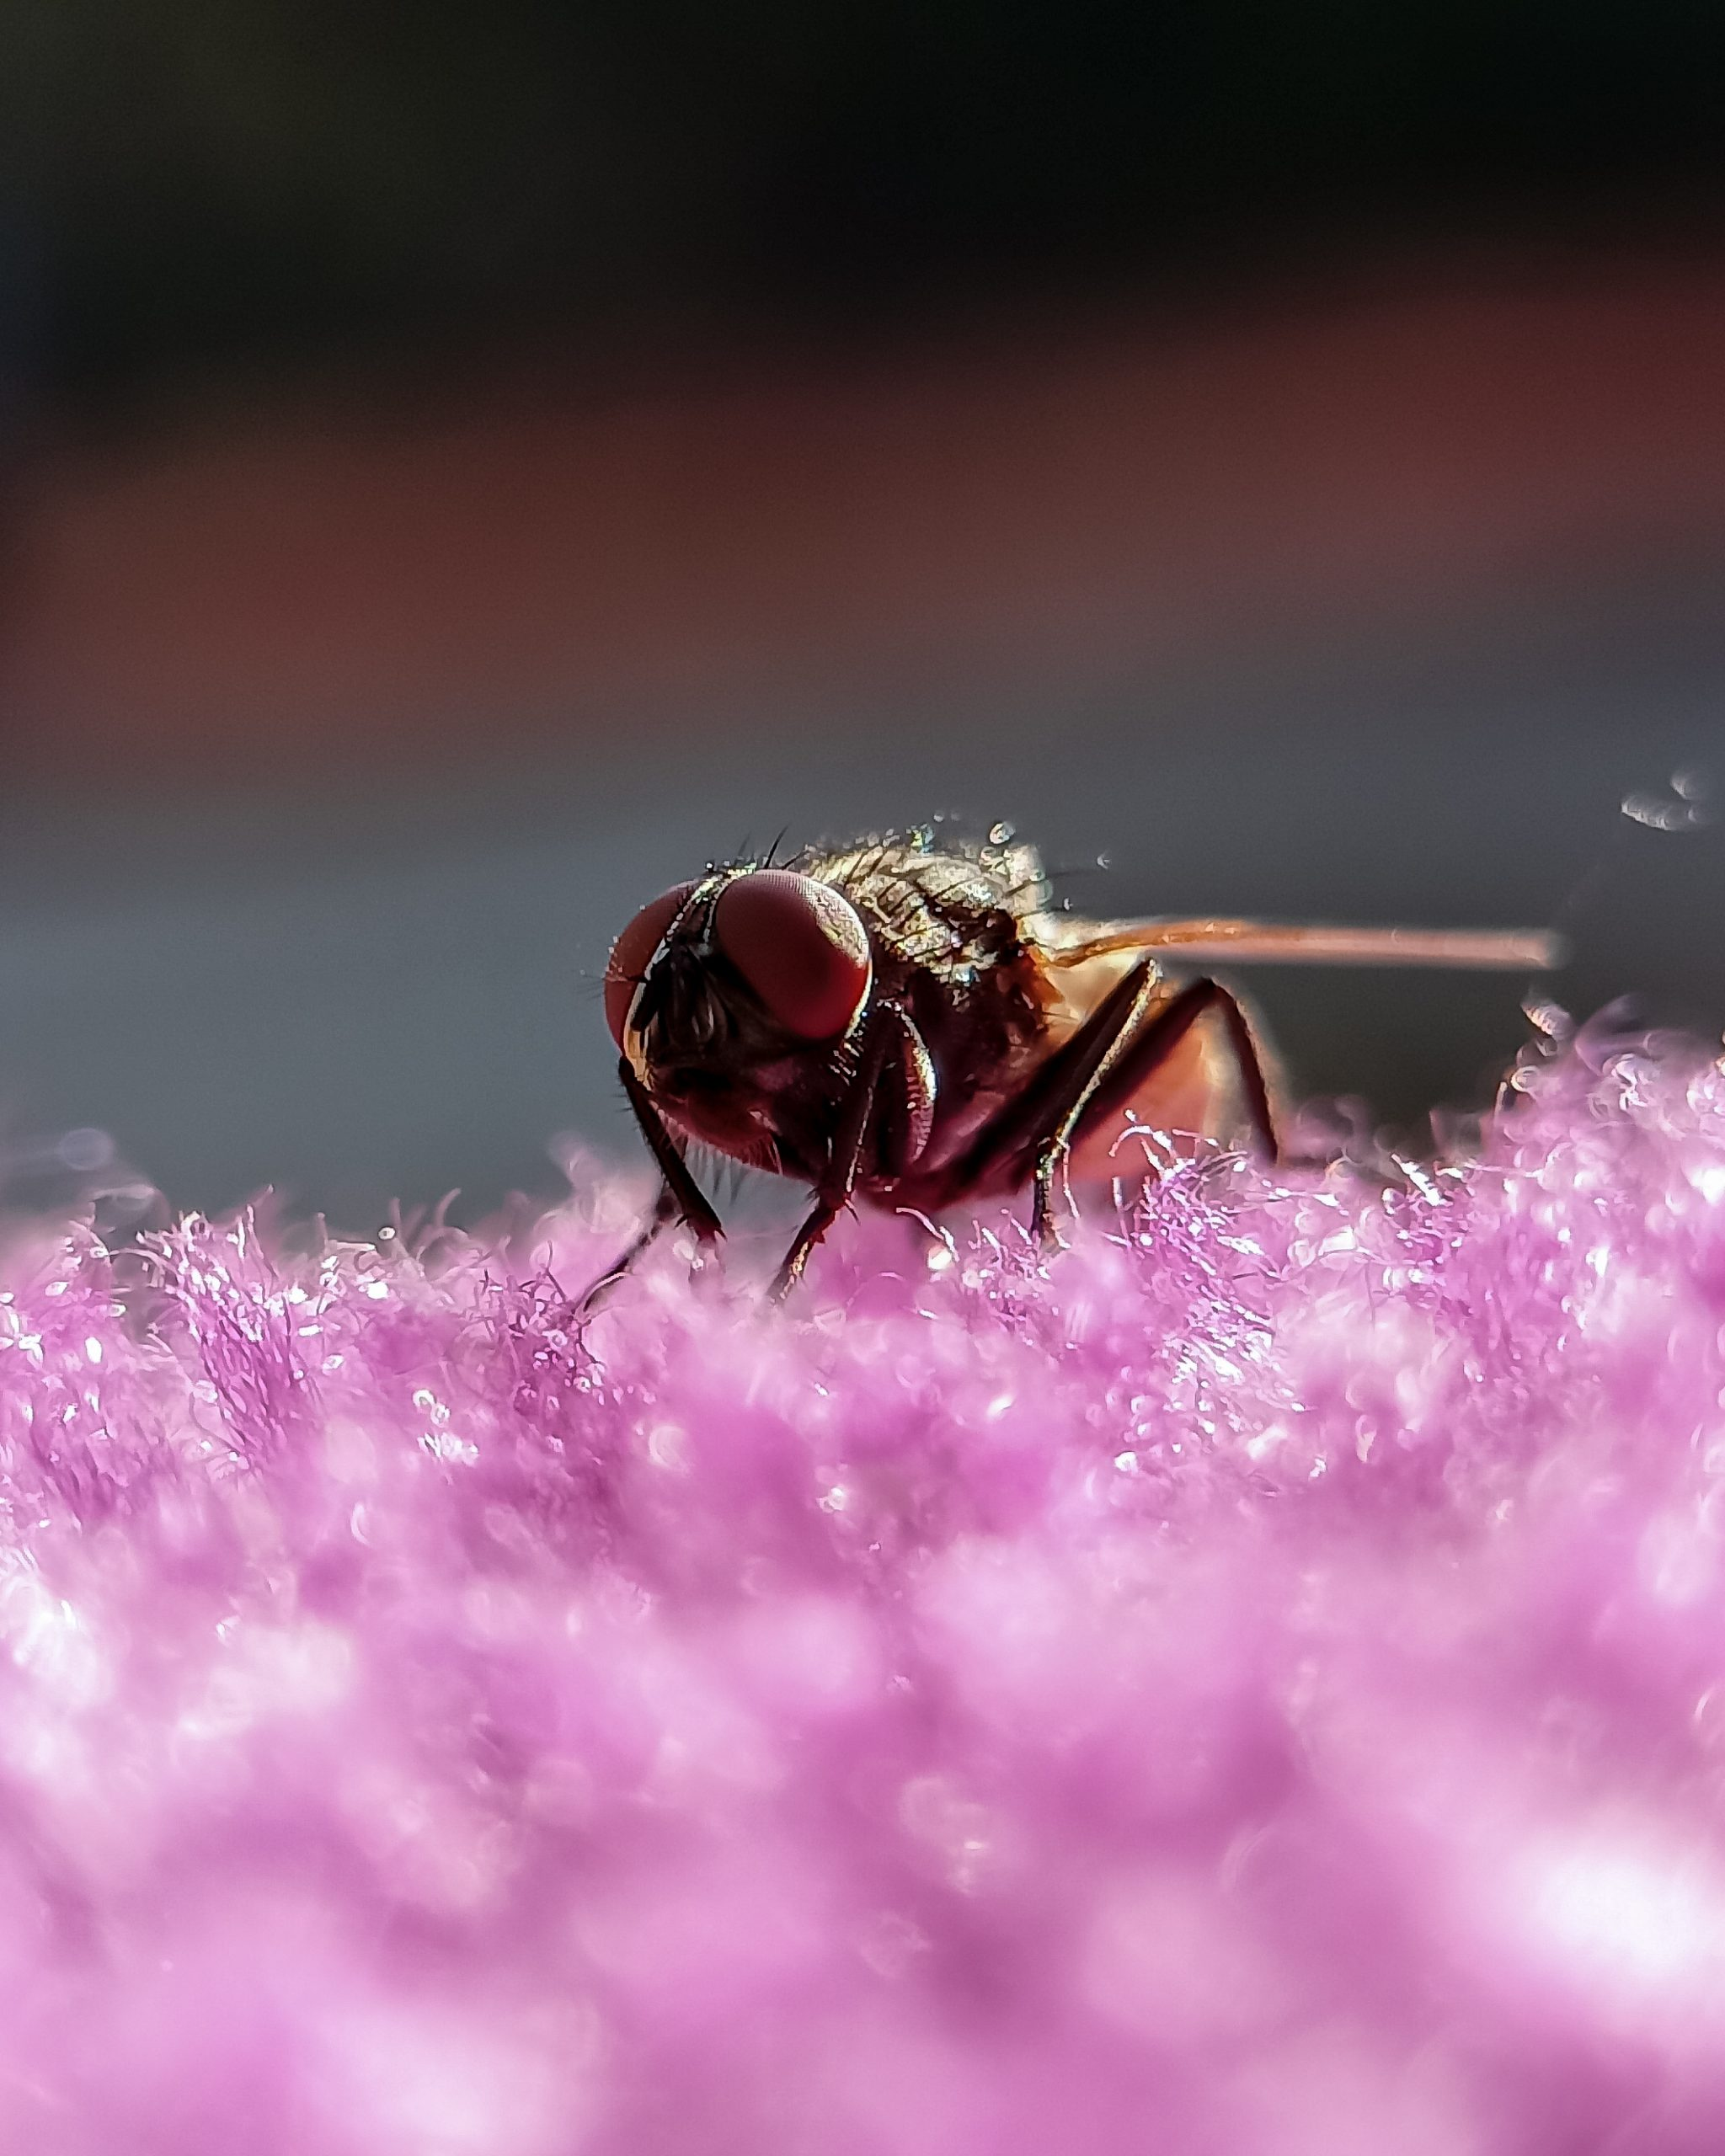 Close up of housefly